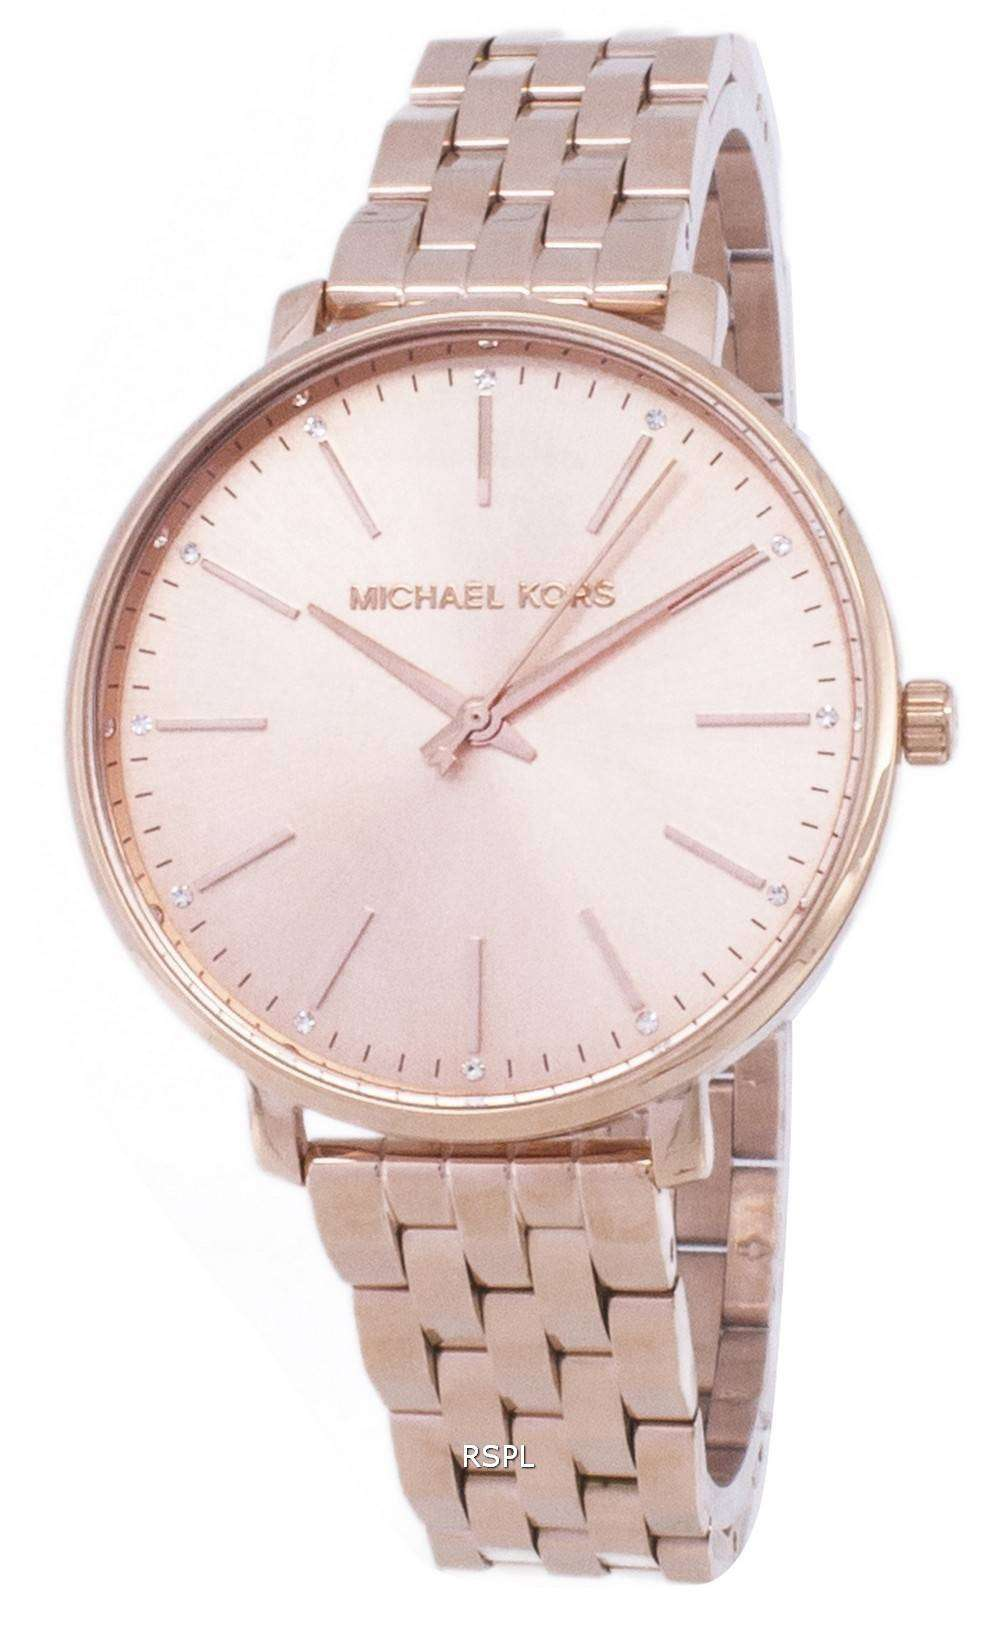 d4246c6a80a4 Michael Kors Pyper MK3897 Quartz Women s Watch